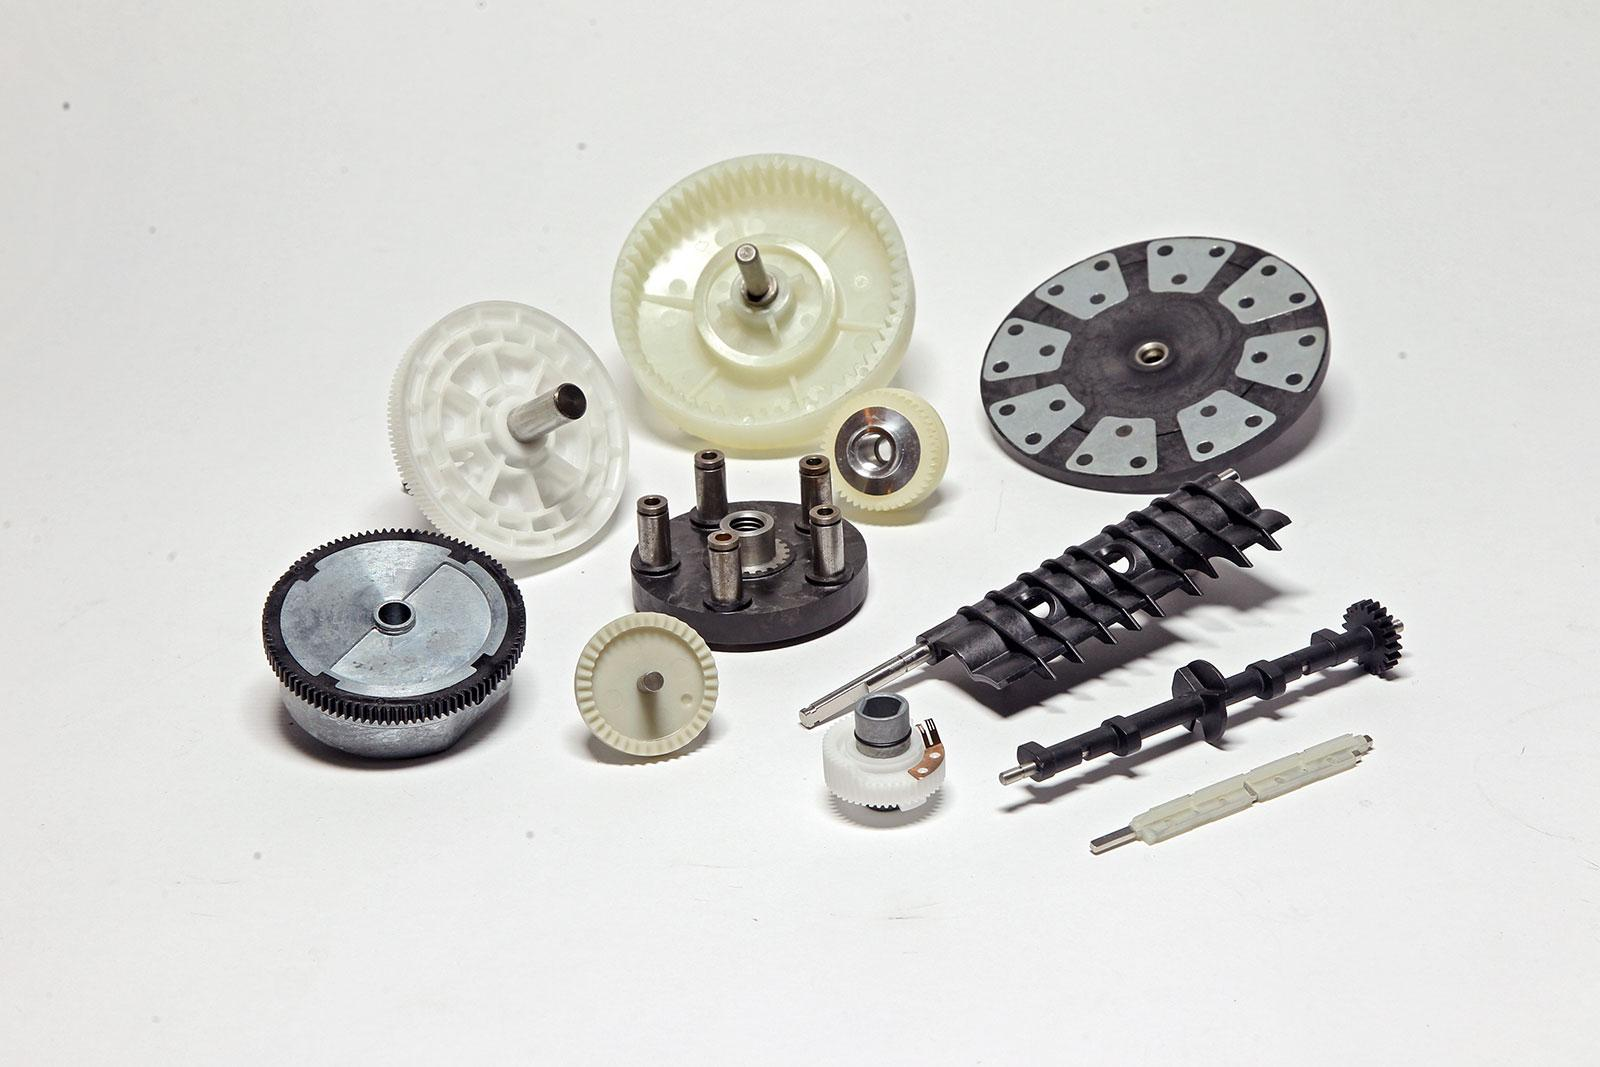 Seitz custom designed and engineered components